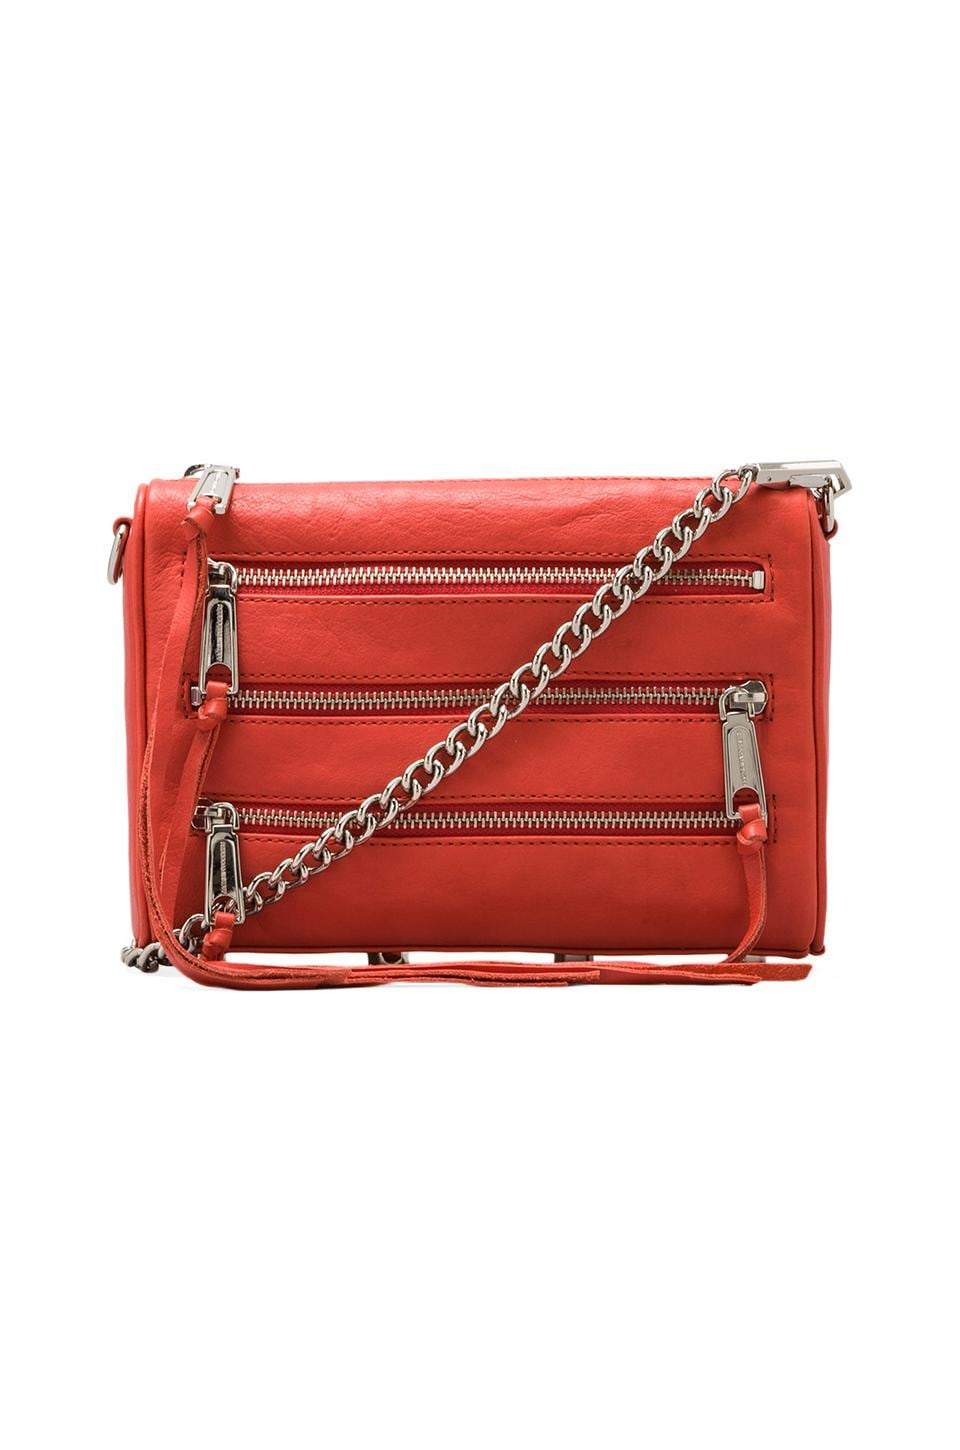 Rebecca Minkoff Mini 5-Zip in Coral